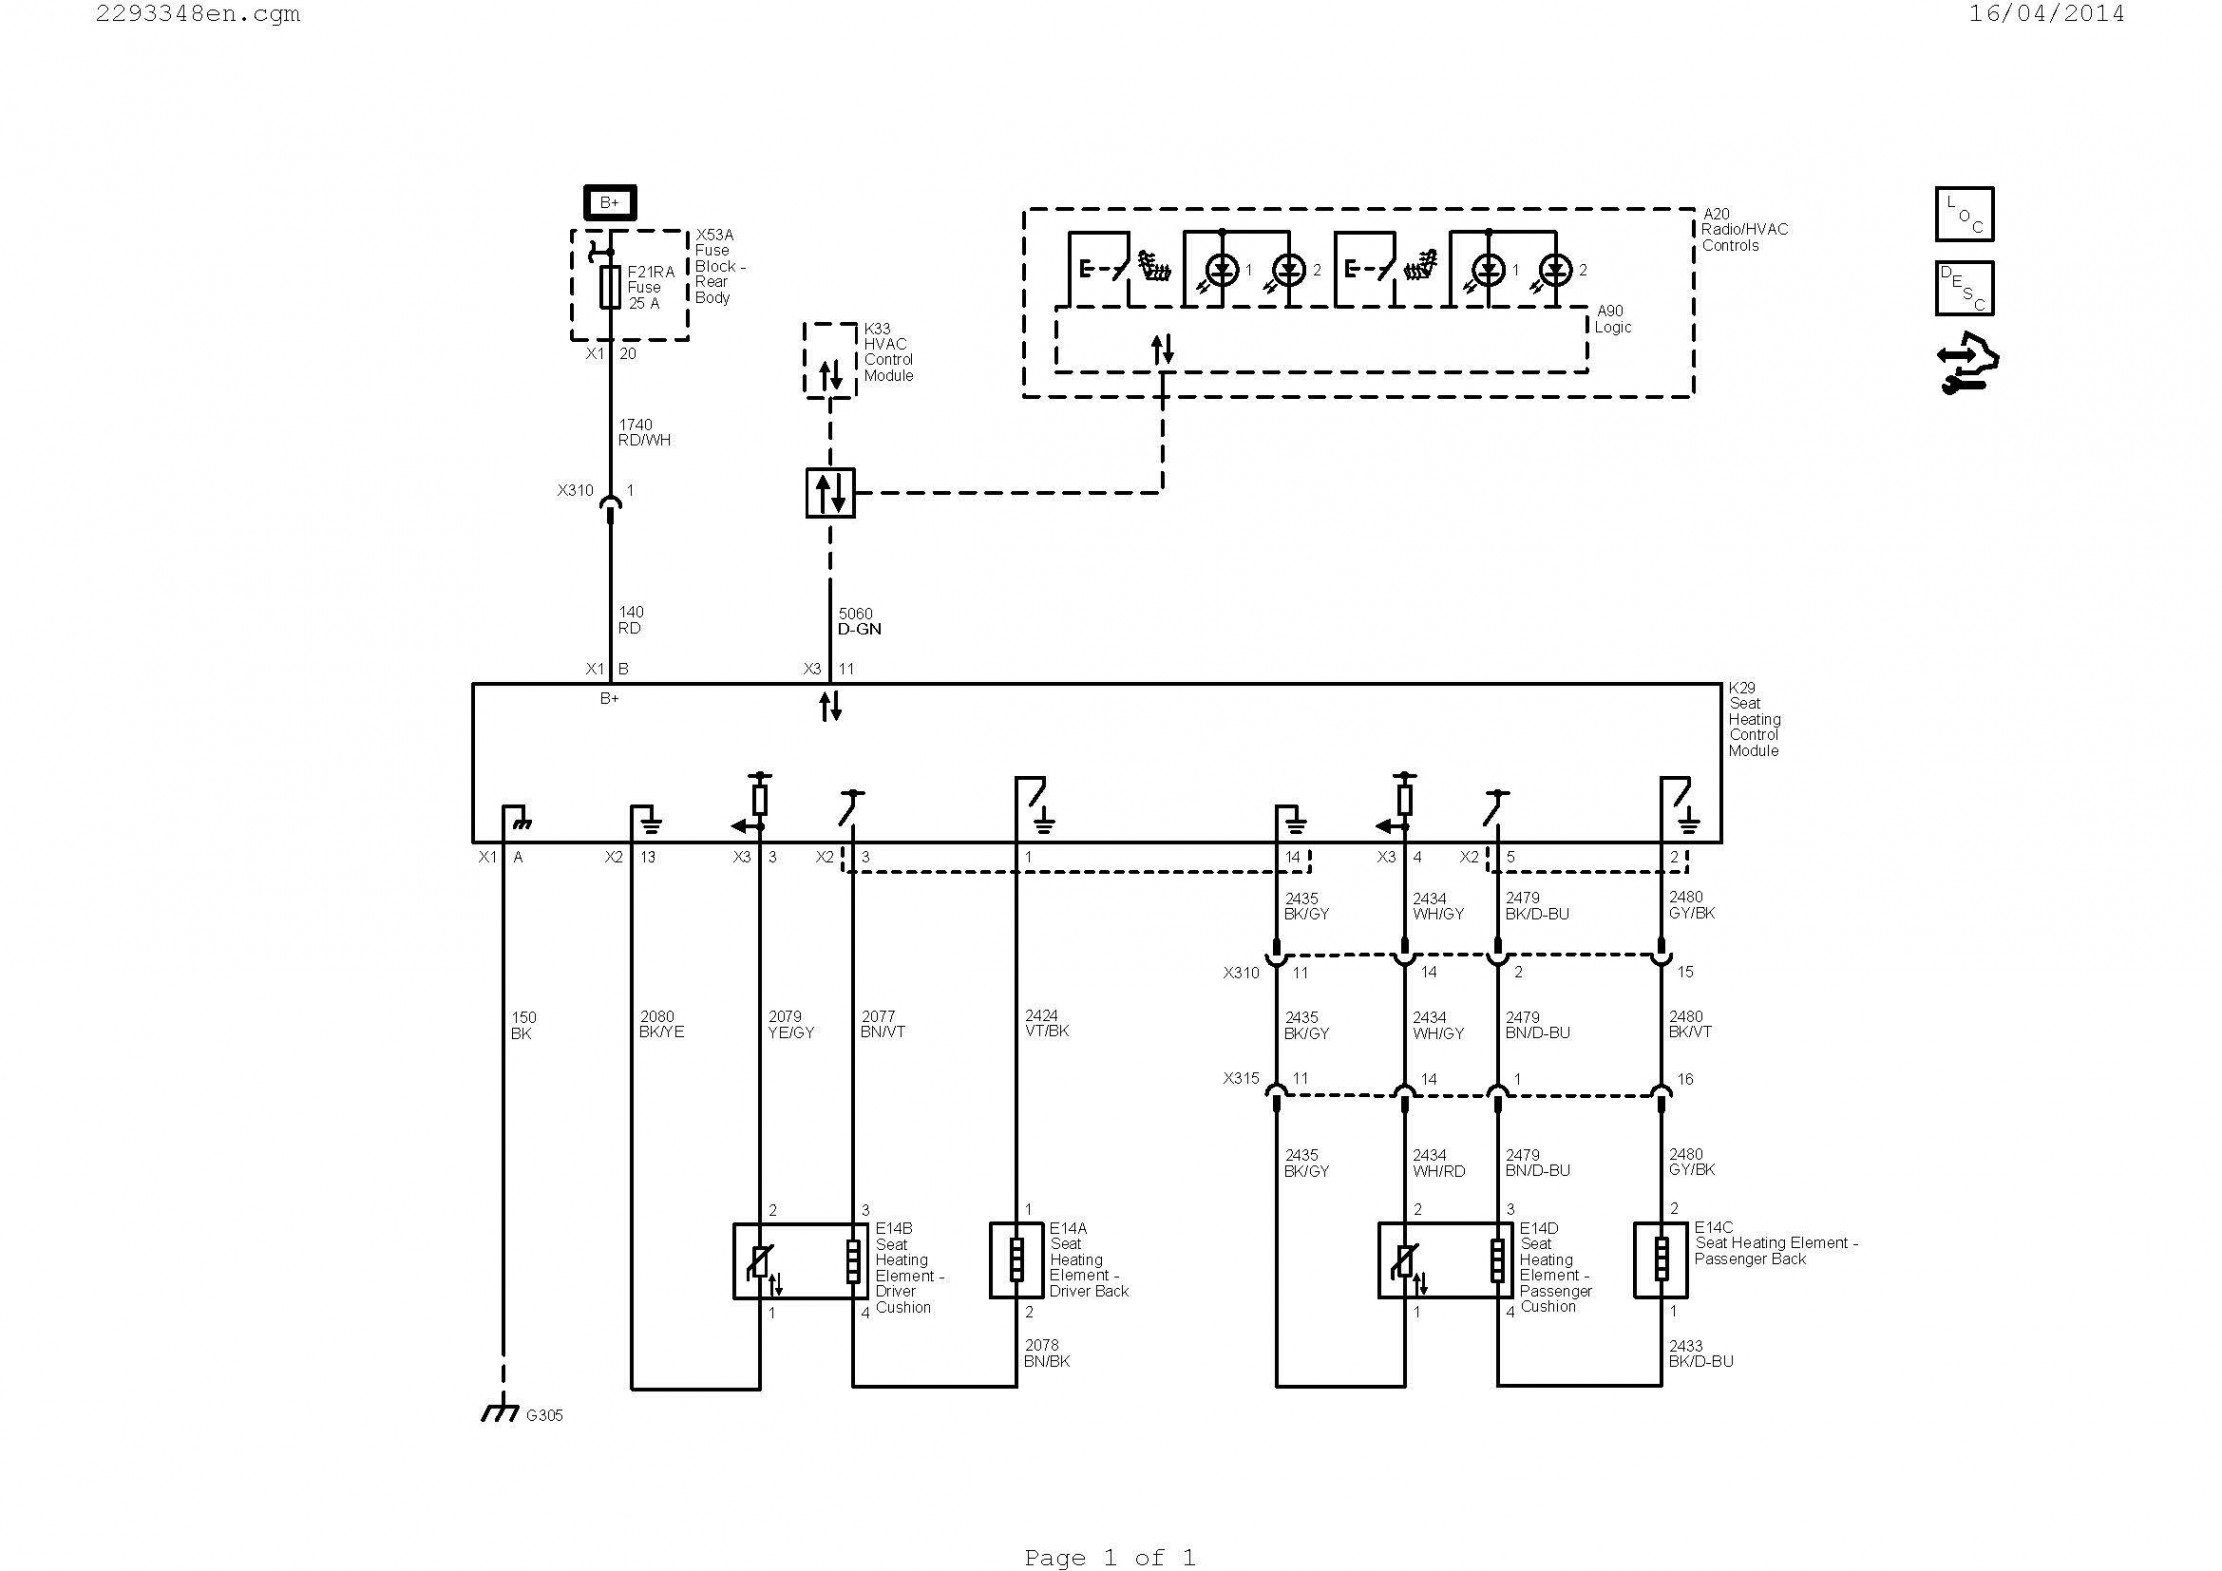 aiphone db 1md wiring diagram Collection-What Is A Phase Diagram – Diagram A Unique Plug Diagram Lovely 10 AiPhone Db 1md 5-k